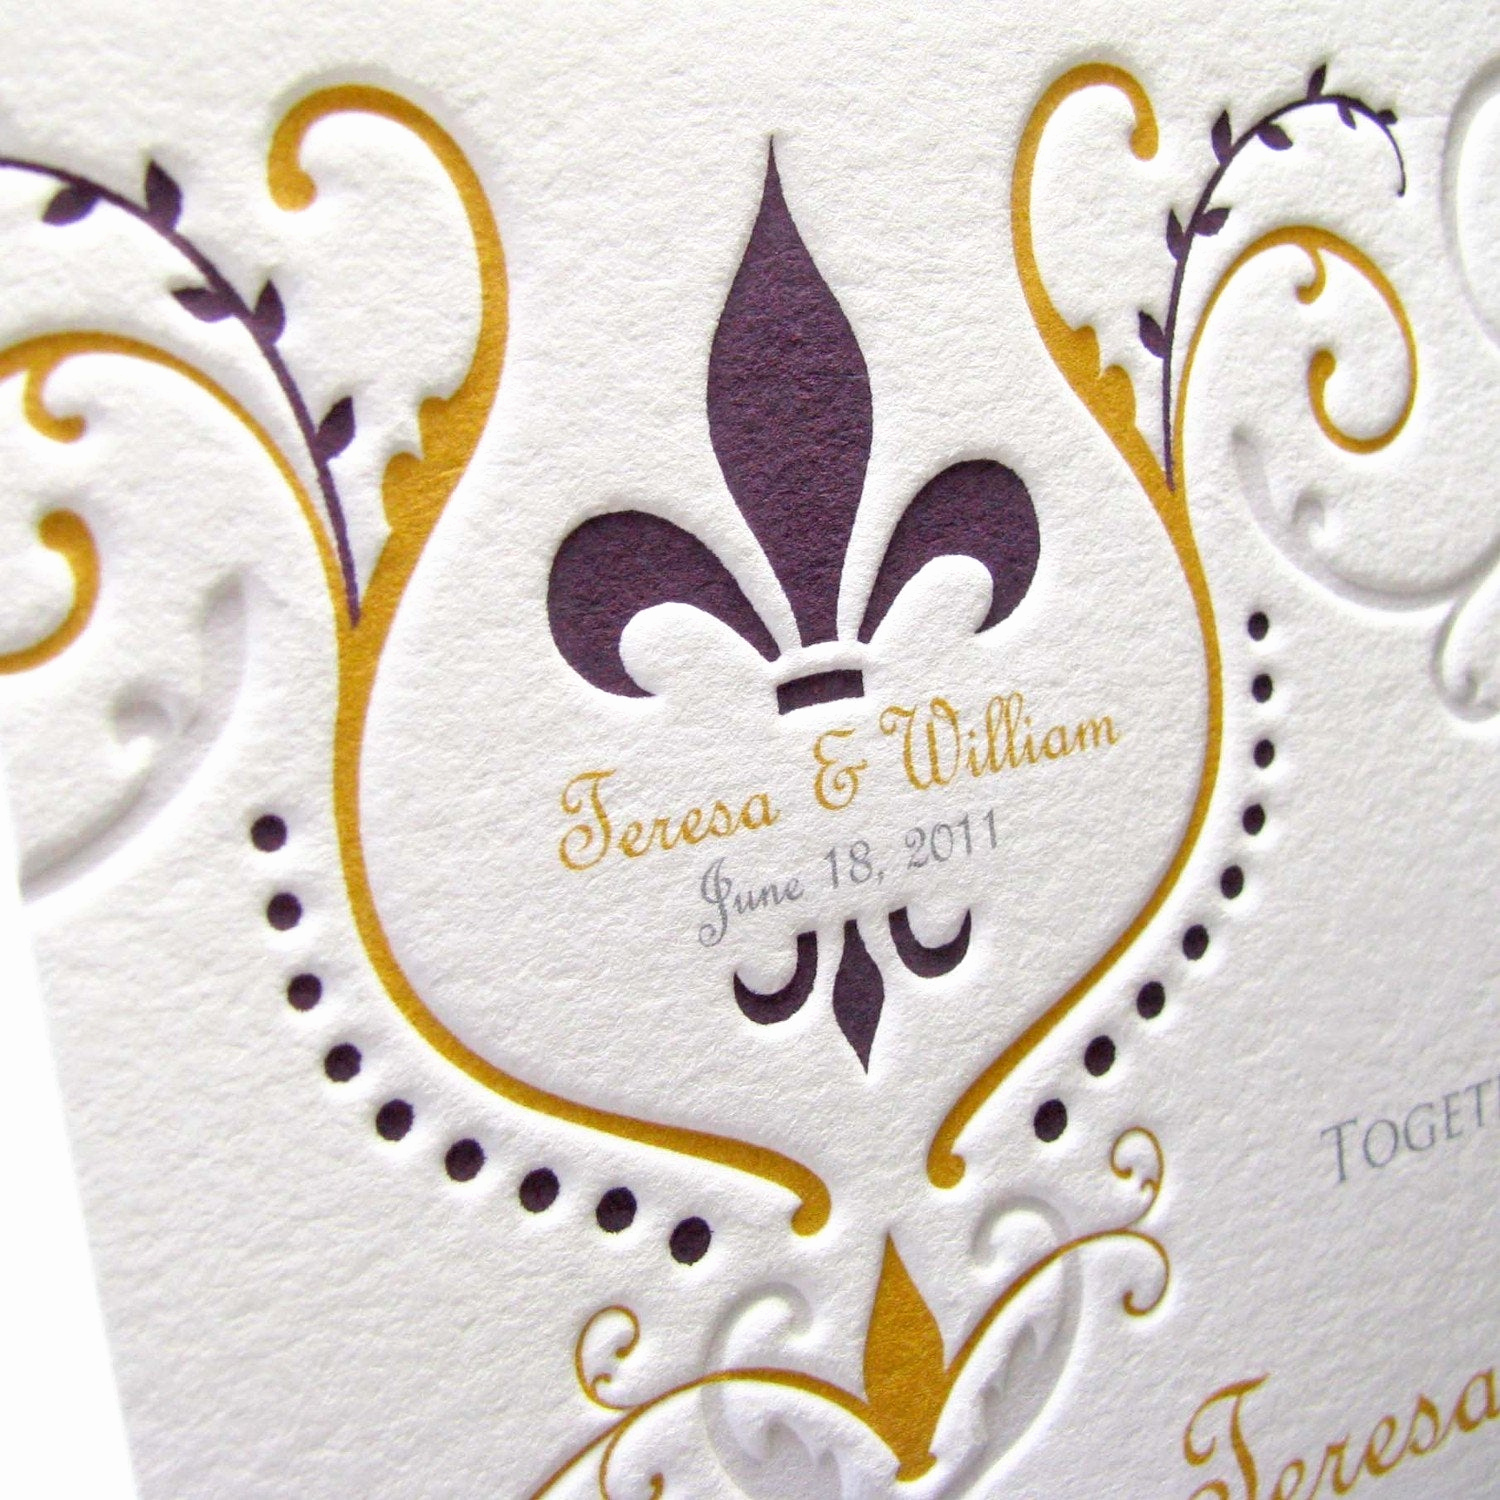 Fleur De Lis Wedding Invitation Unique Items Similar to Fleur De Lis Wedding Invitations On Etsy